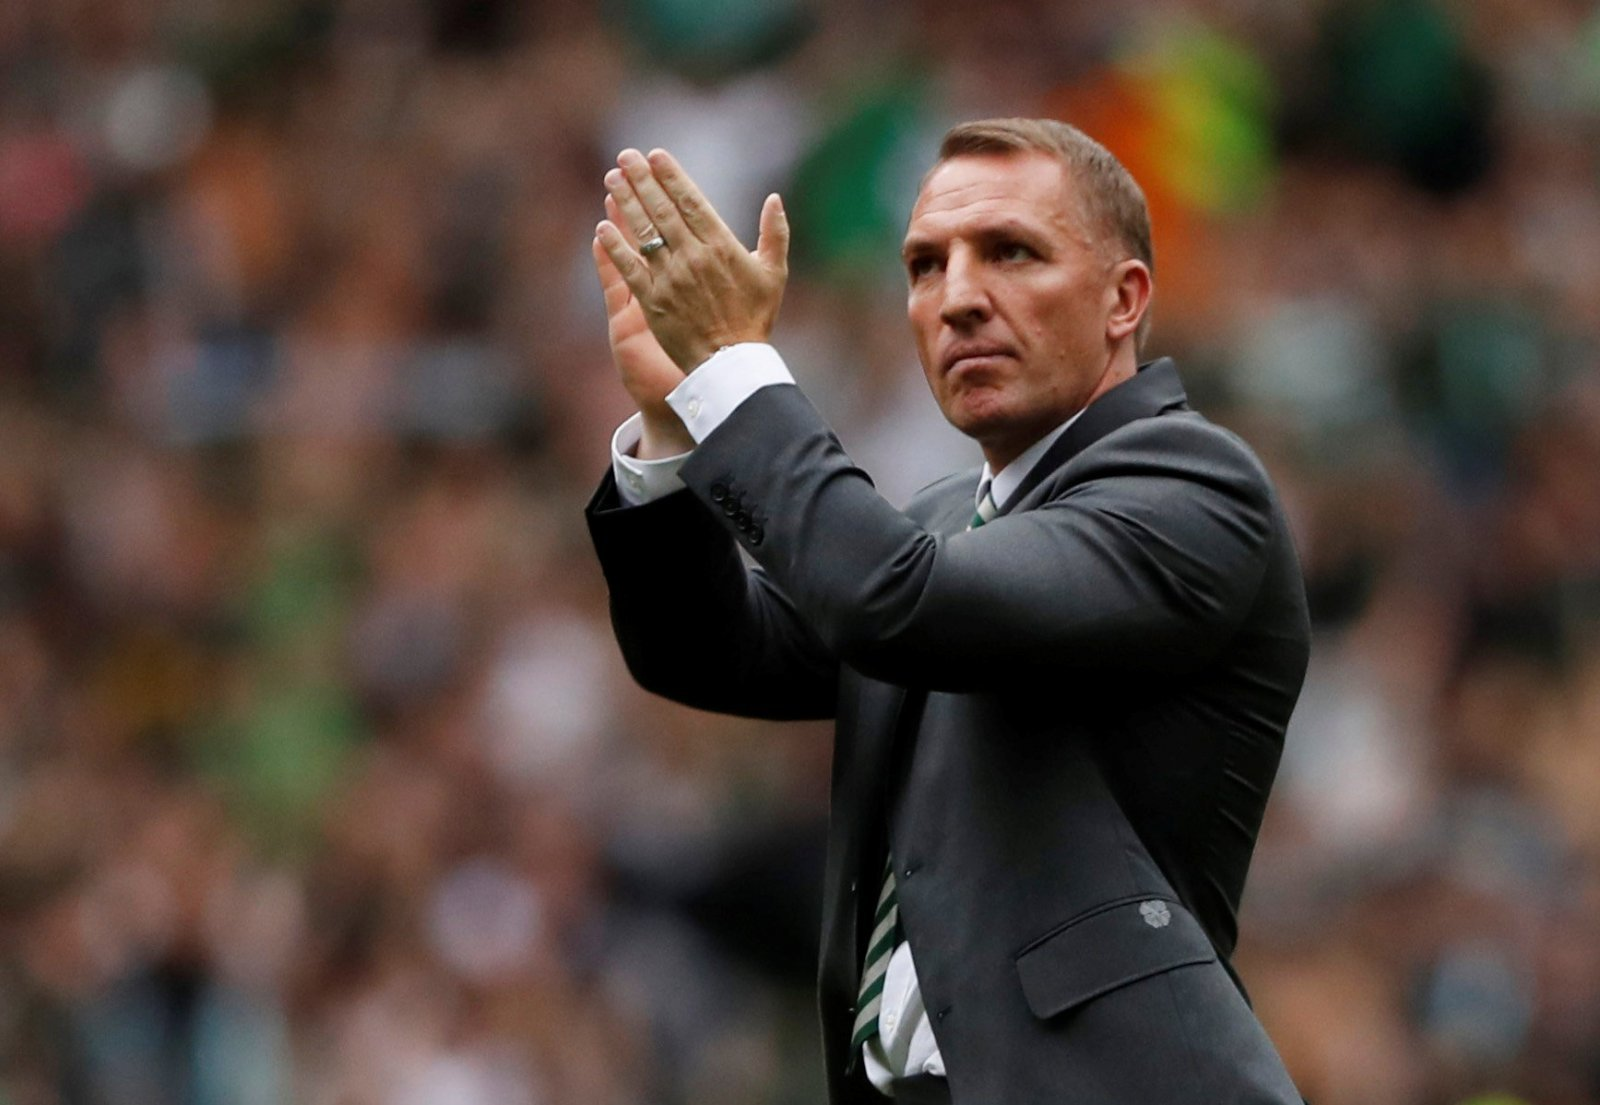 Celtic fans on Twitter don't believe the Rodgers to Villa rumours